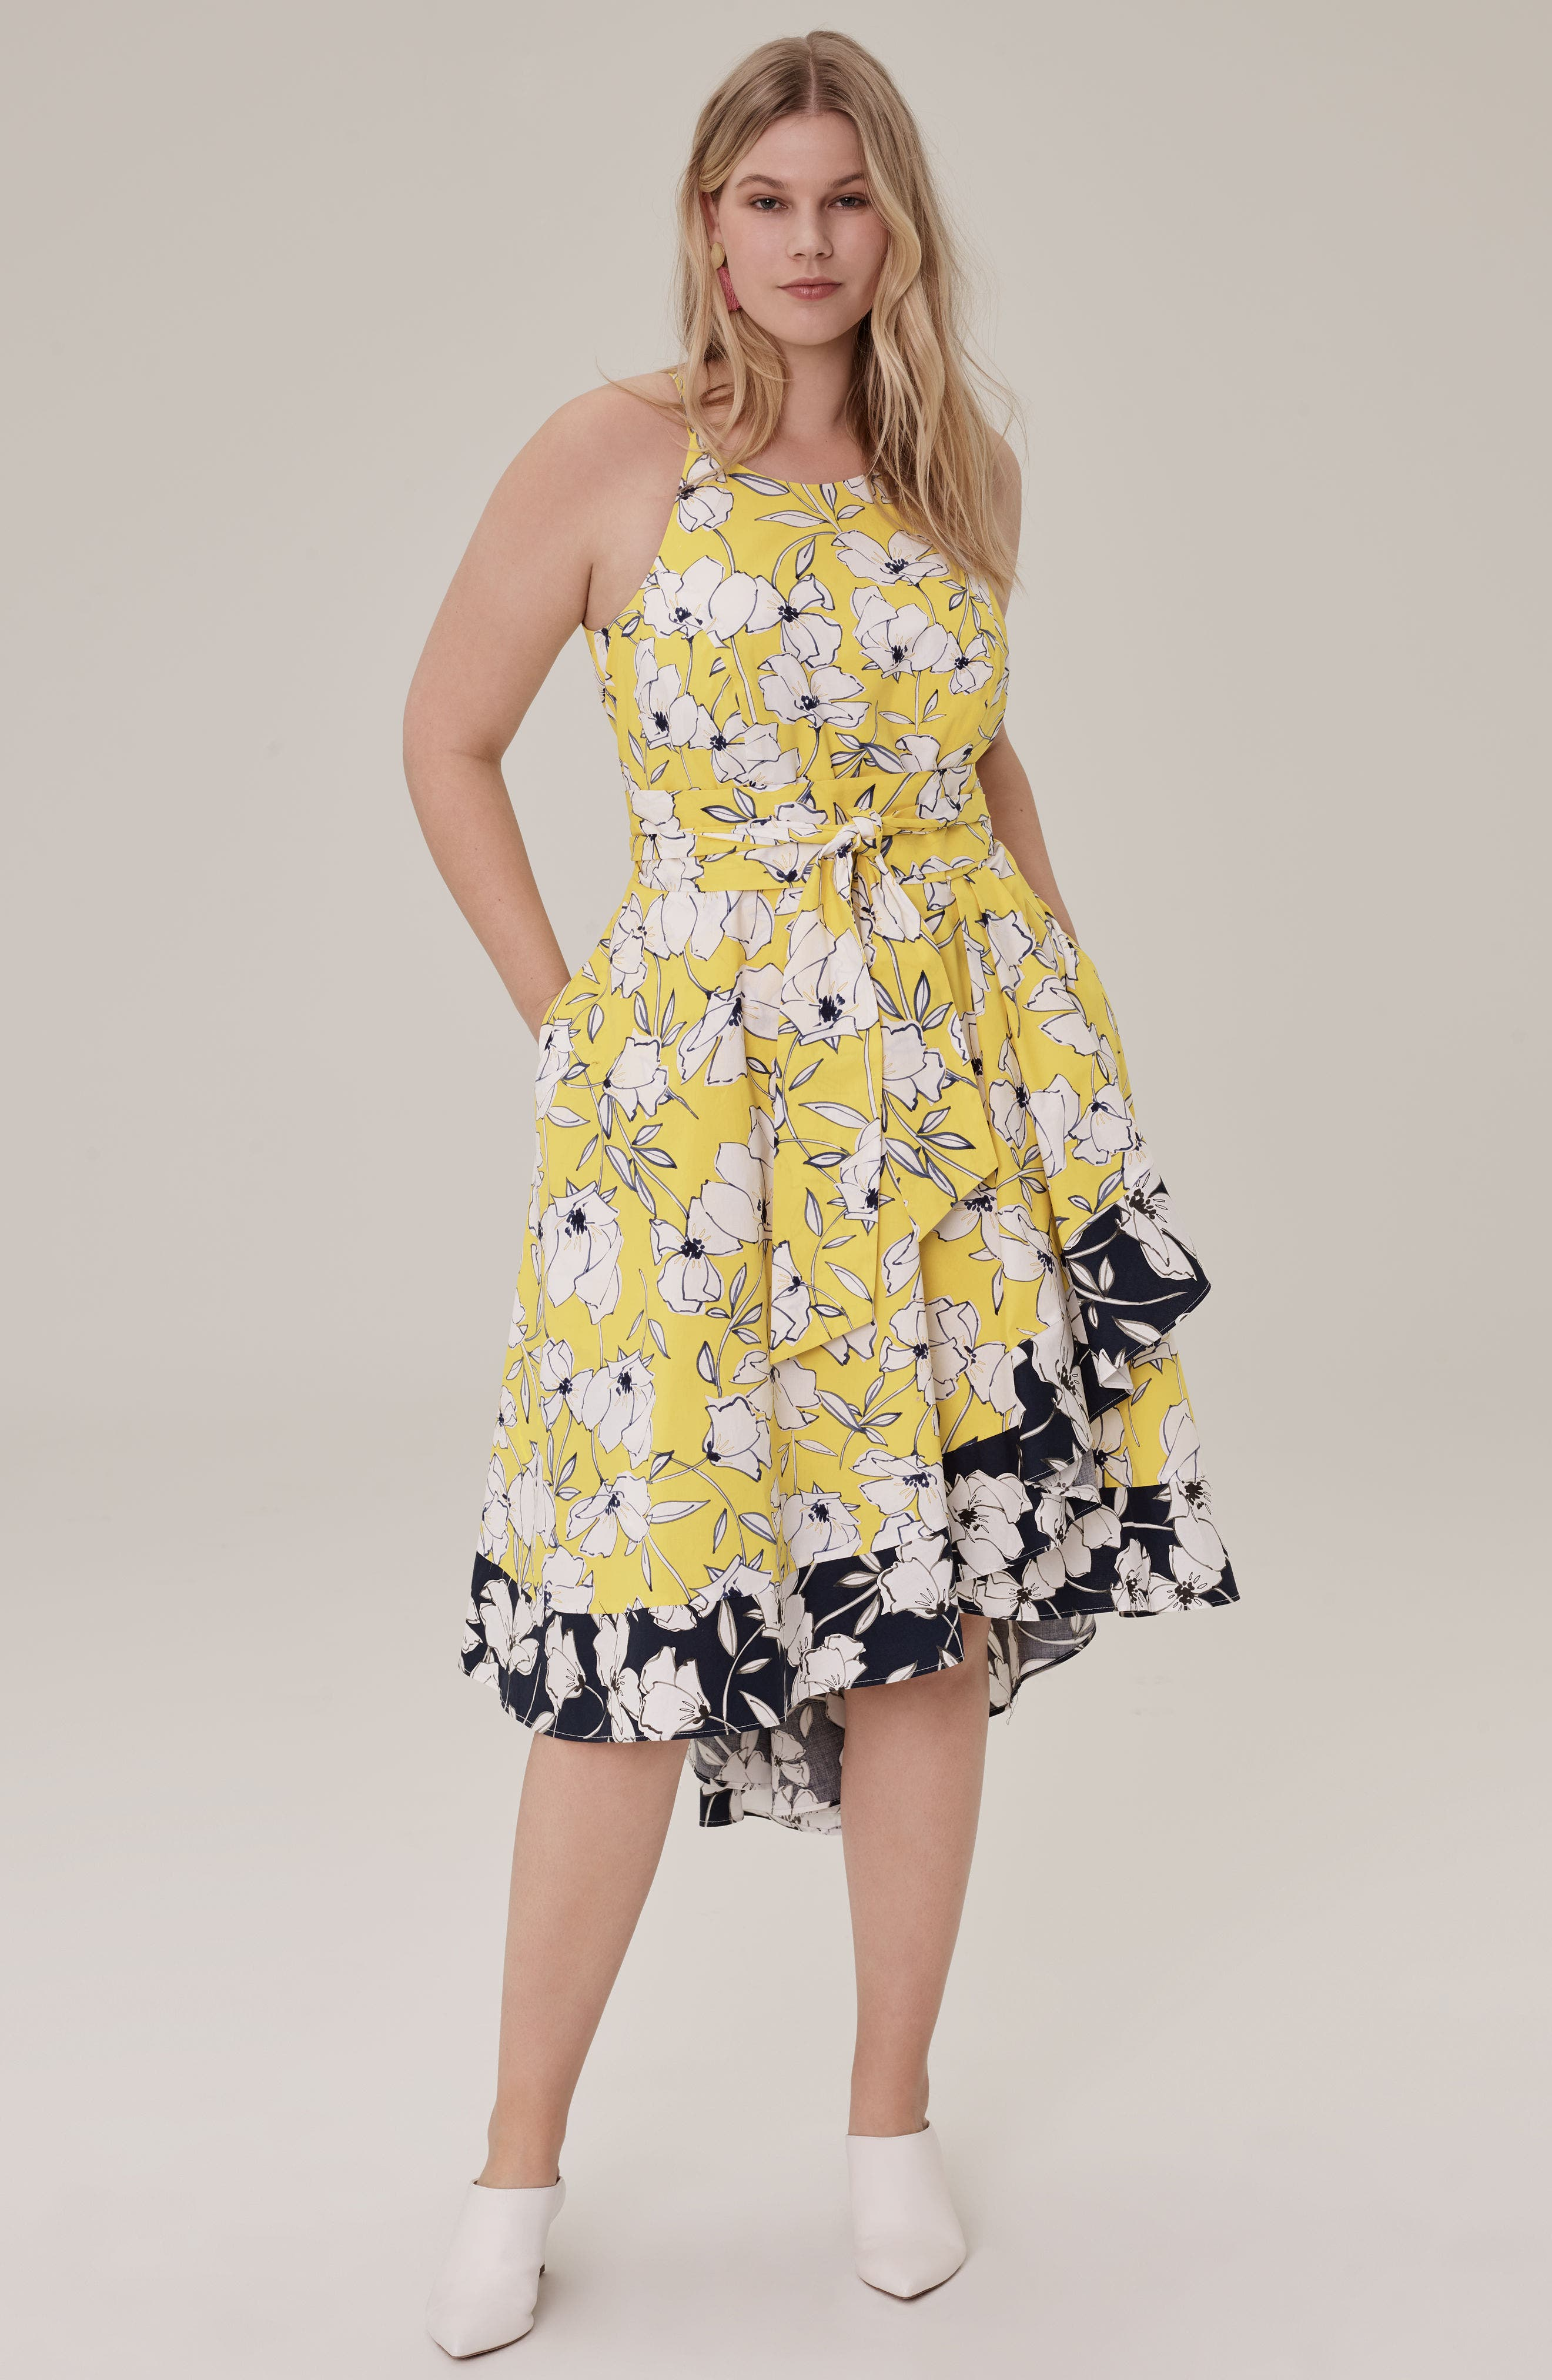 Floral Fit & Flare Dress,                             Alternate thumbnail 2, color,                             Yellow/ Navy/ White